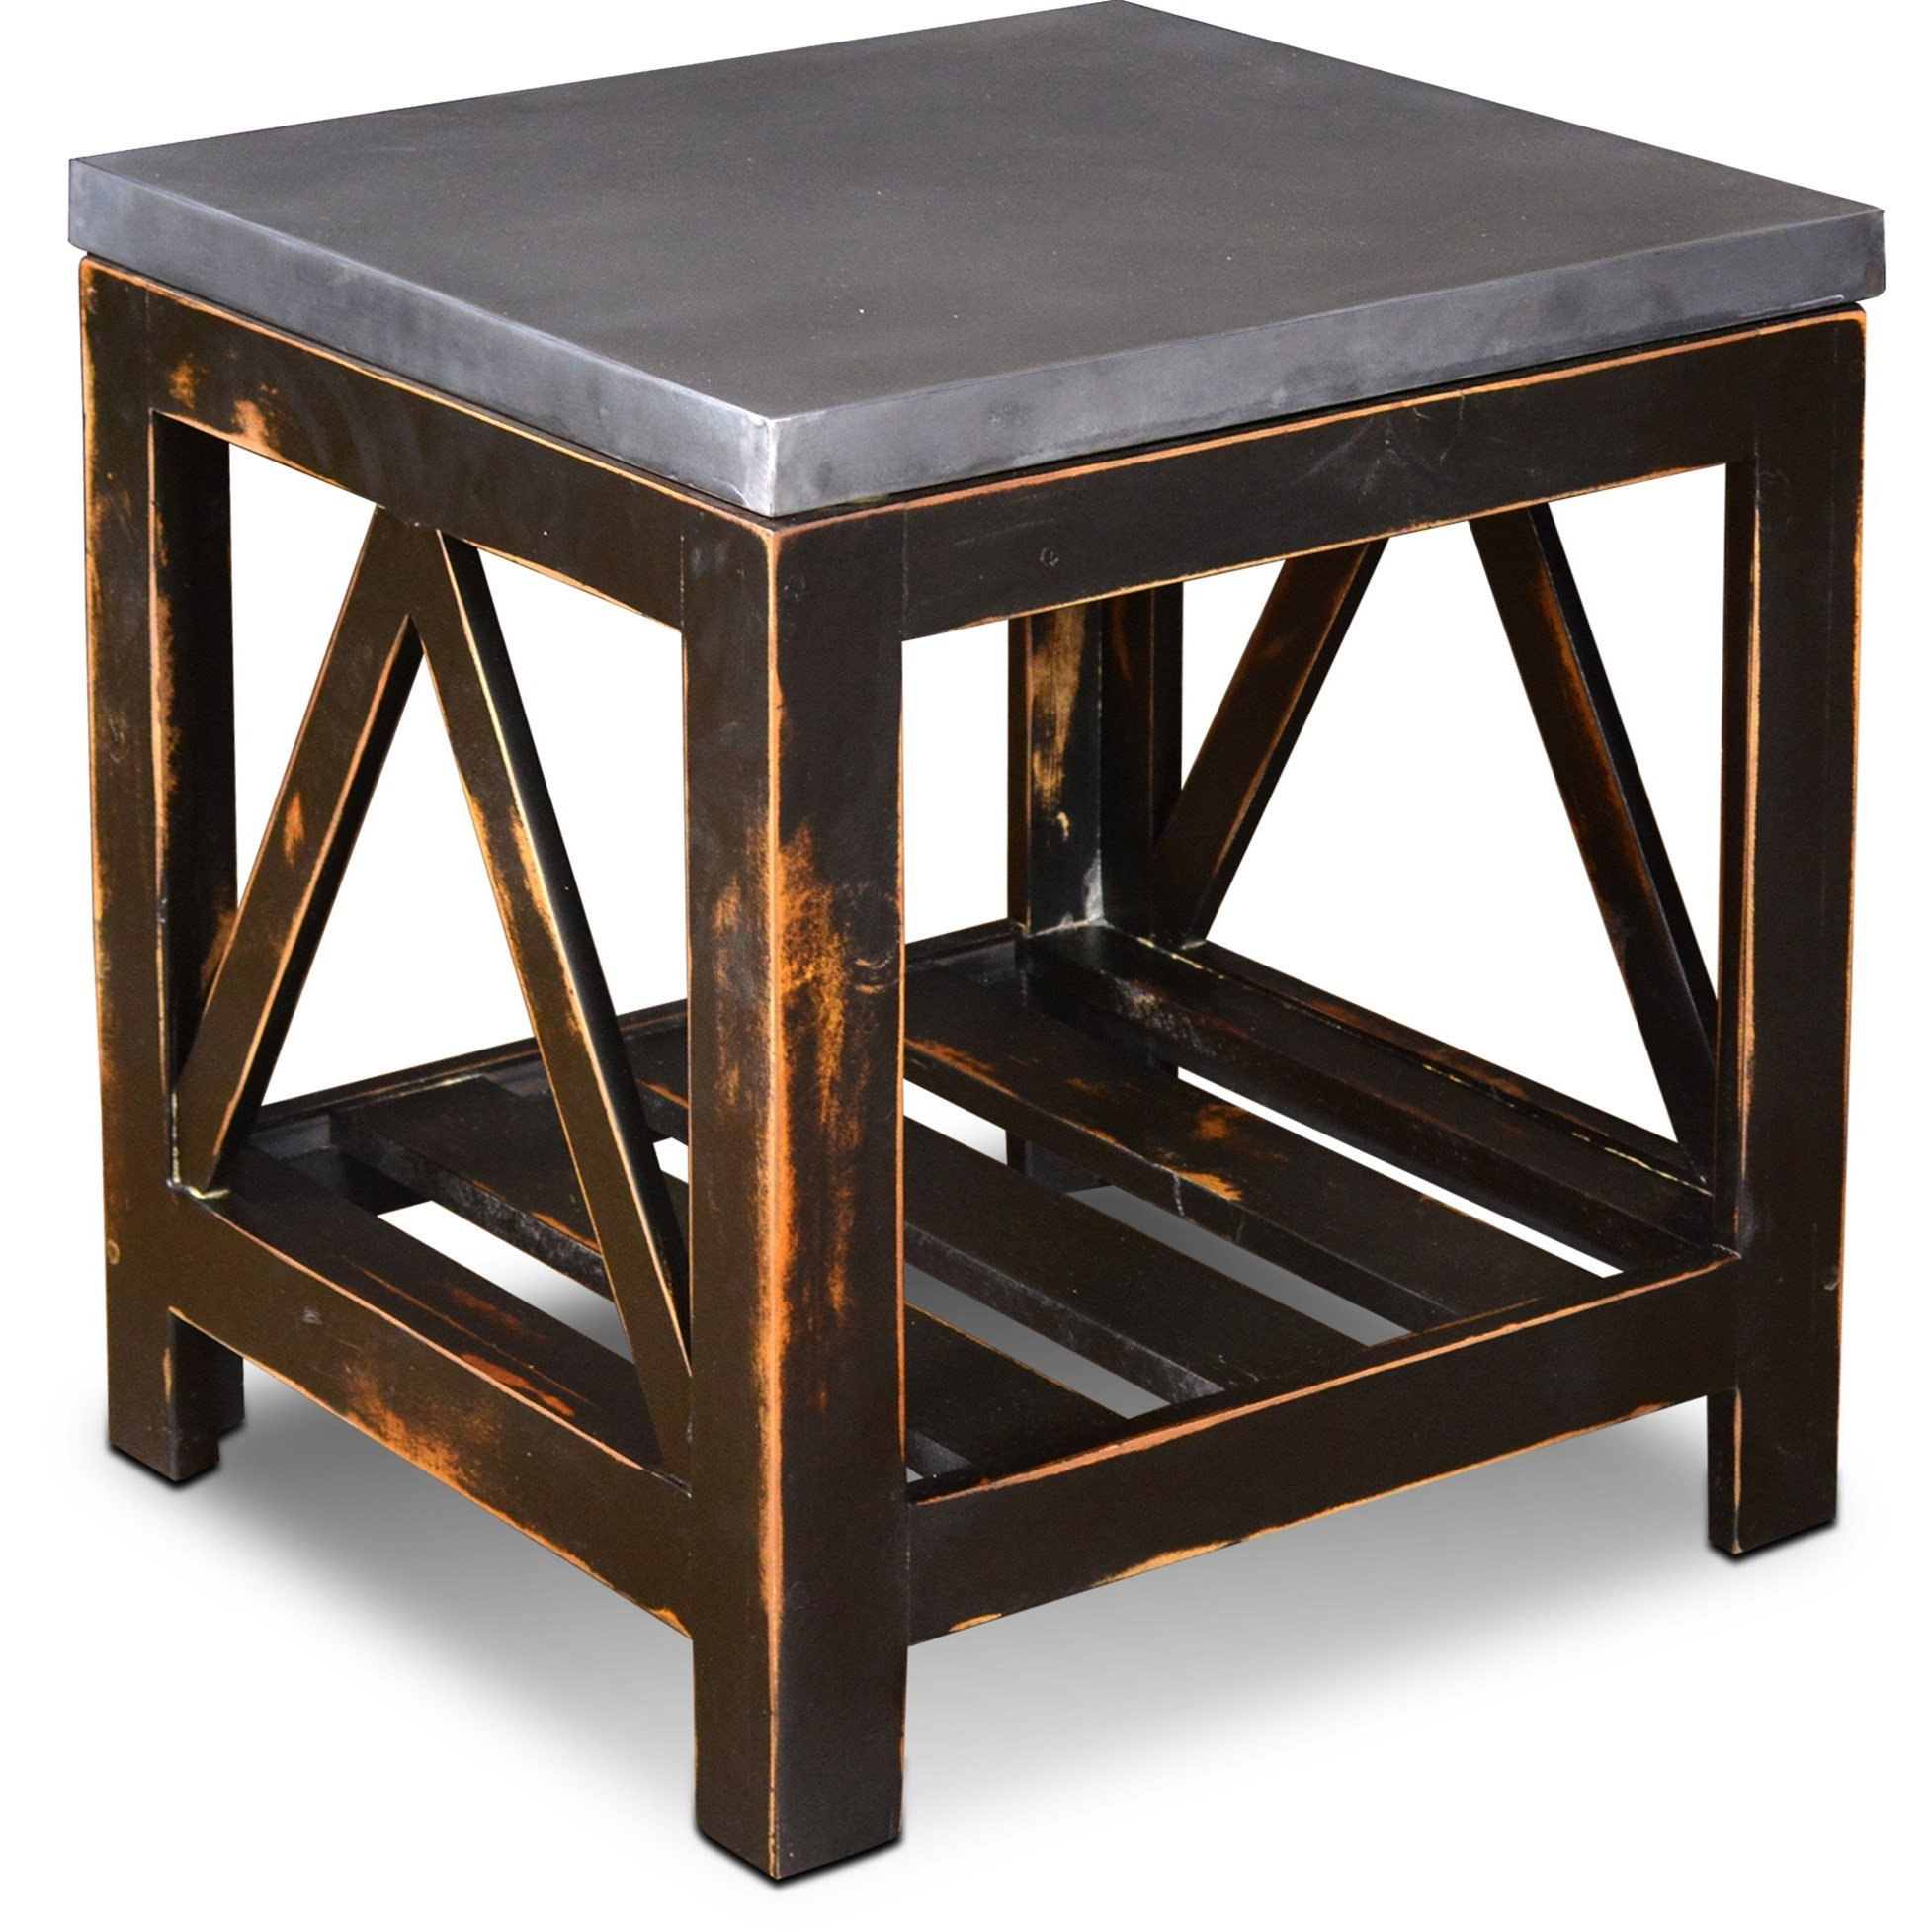 Aspen End Table by Horizon Home at Home Furnishings Direct